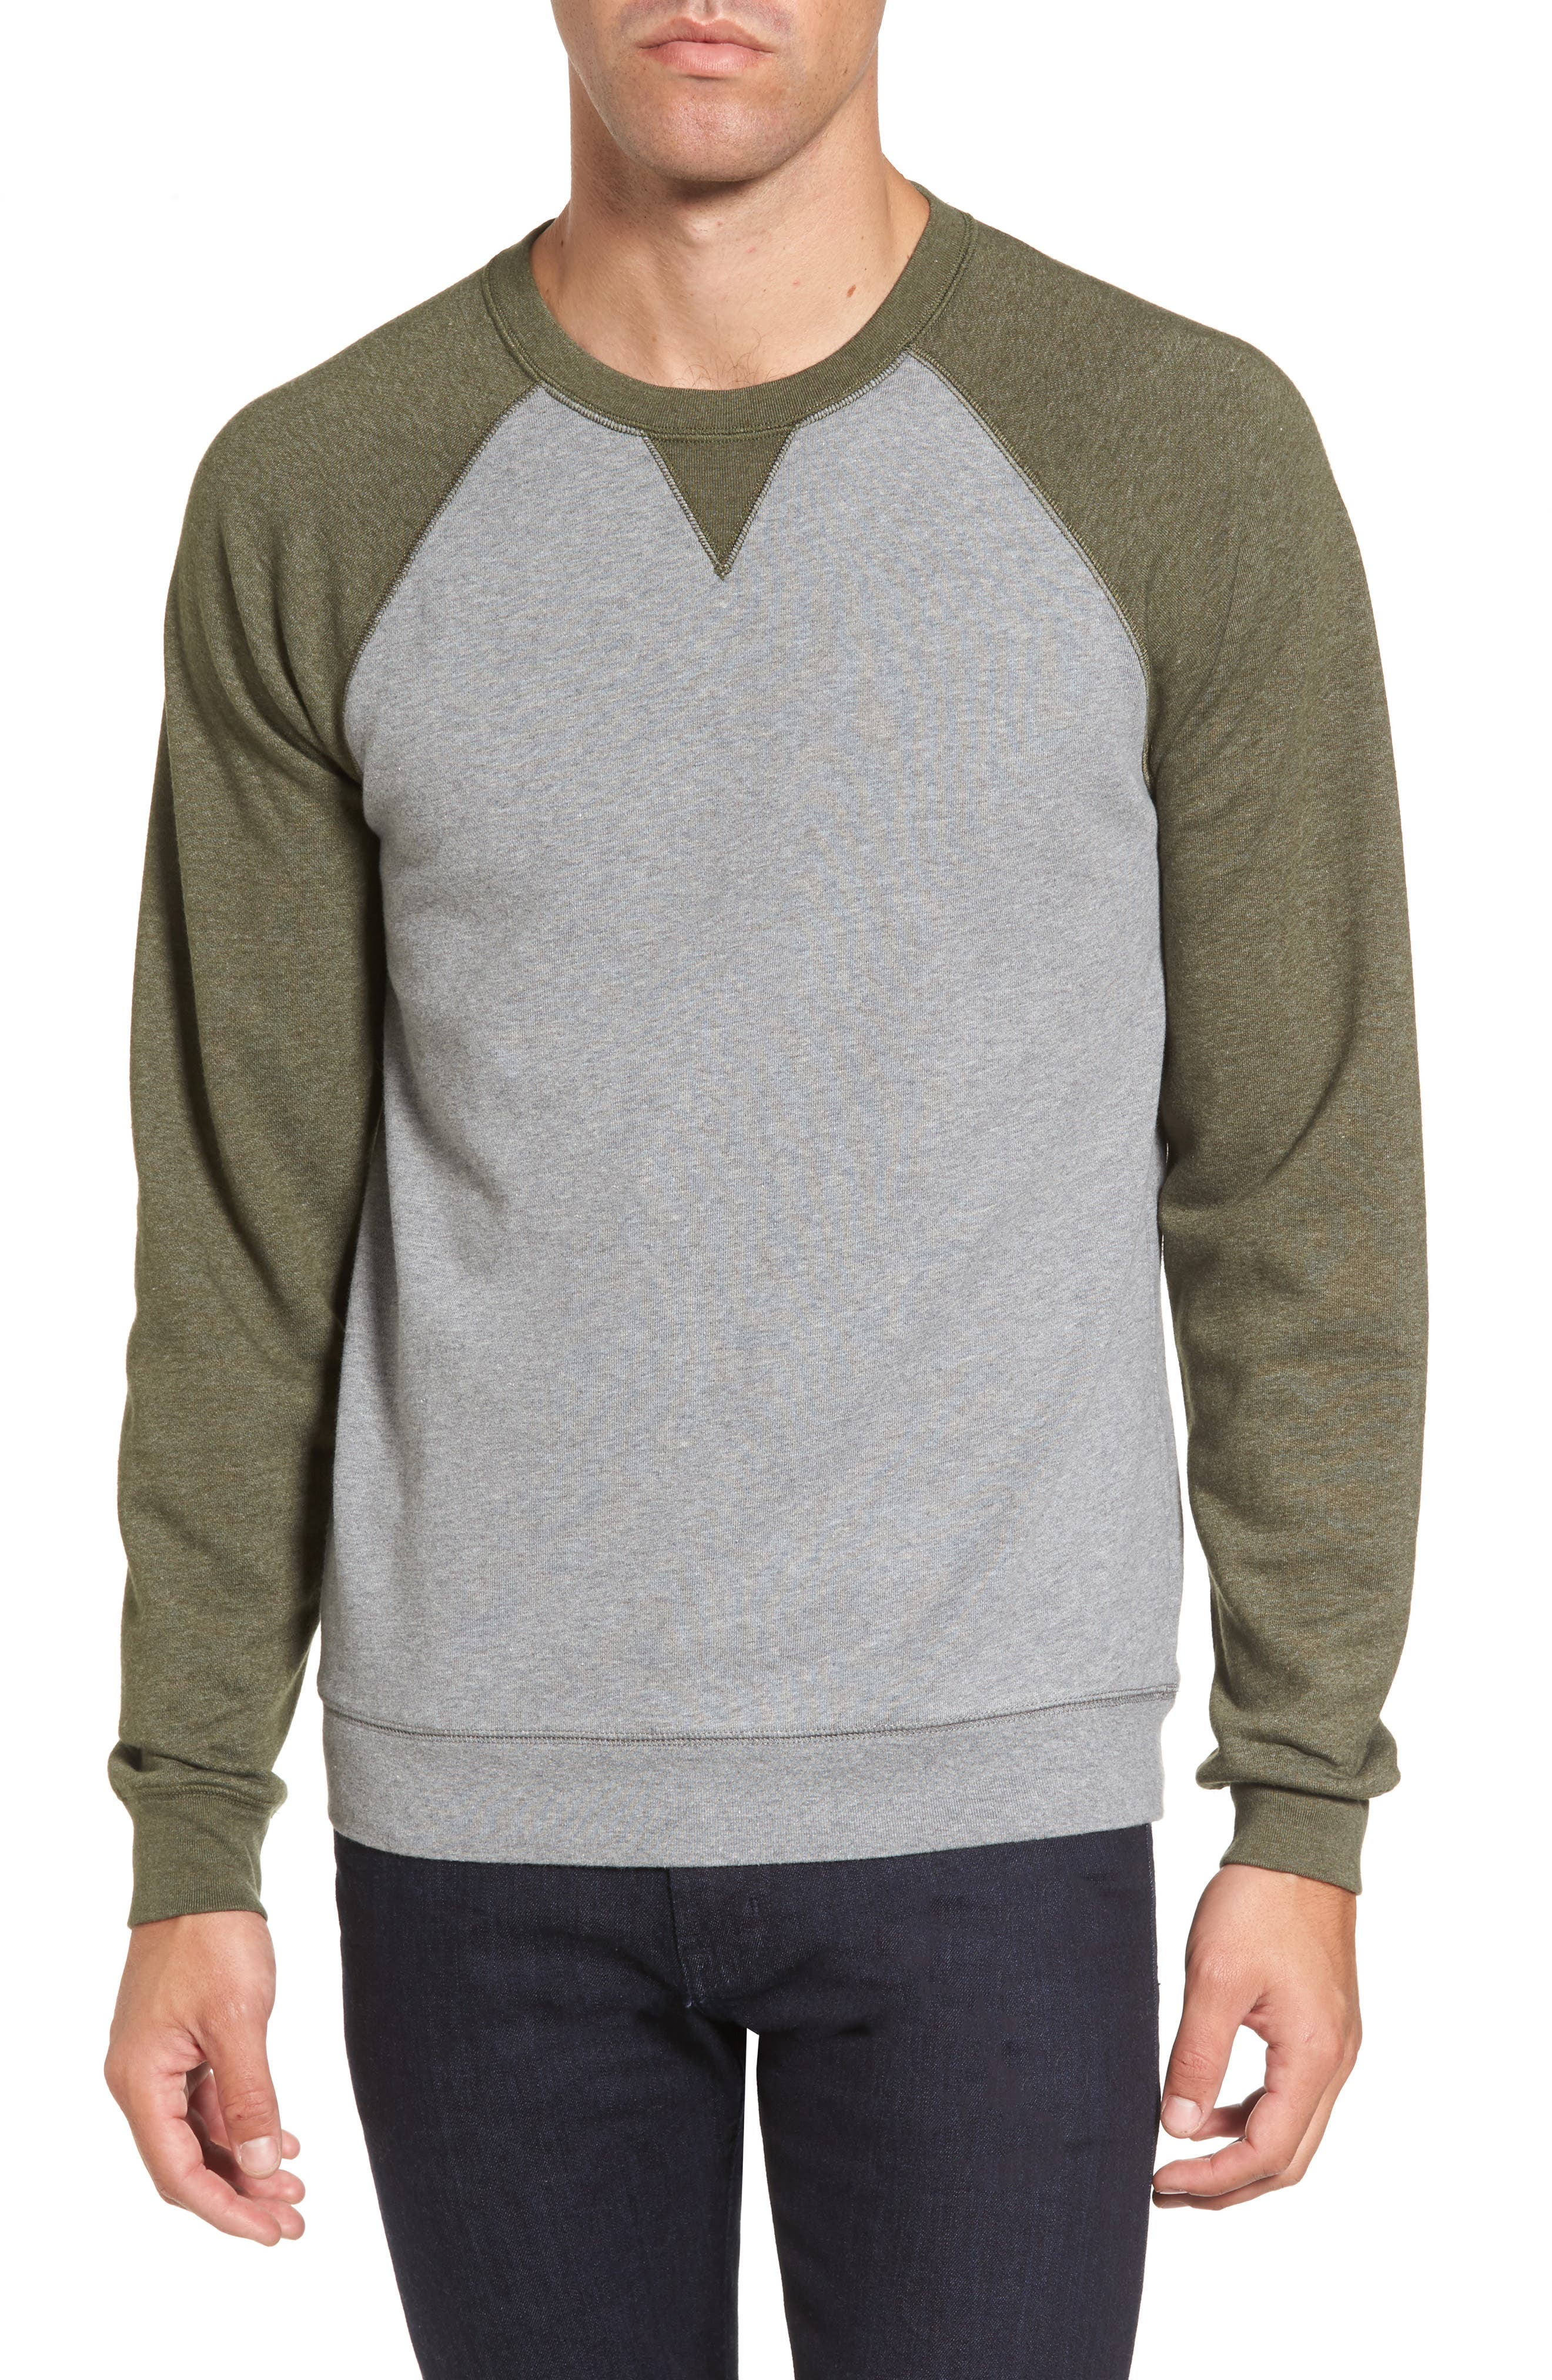 Main Image - Tailor Vintage Colorblock French Terry Sweatshirt